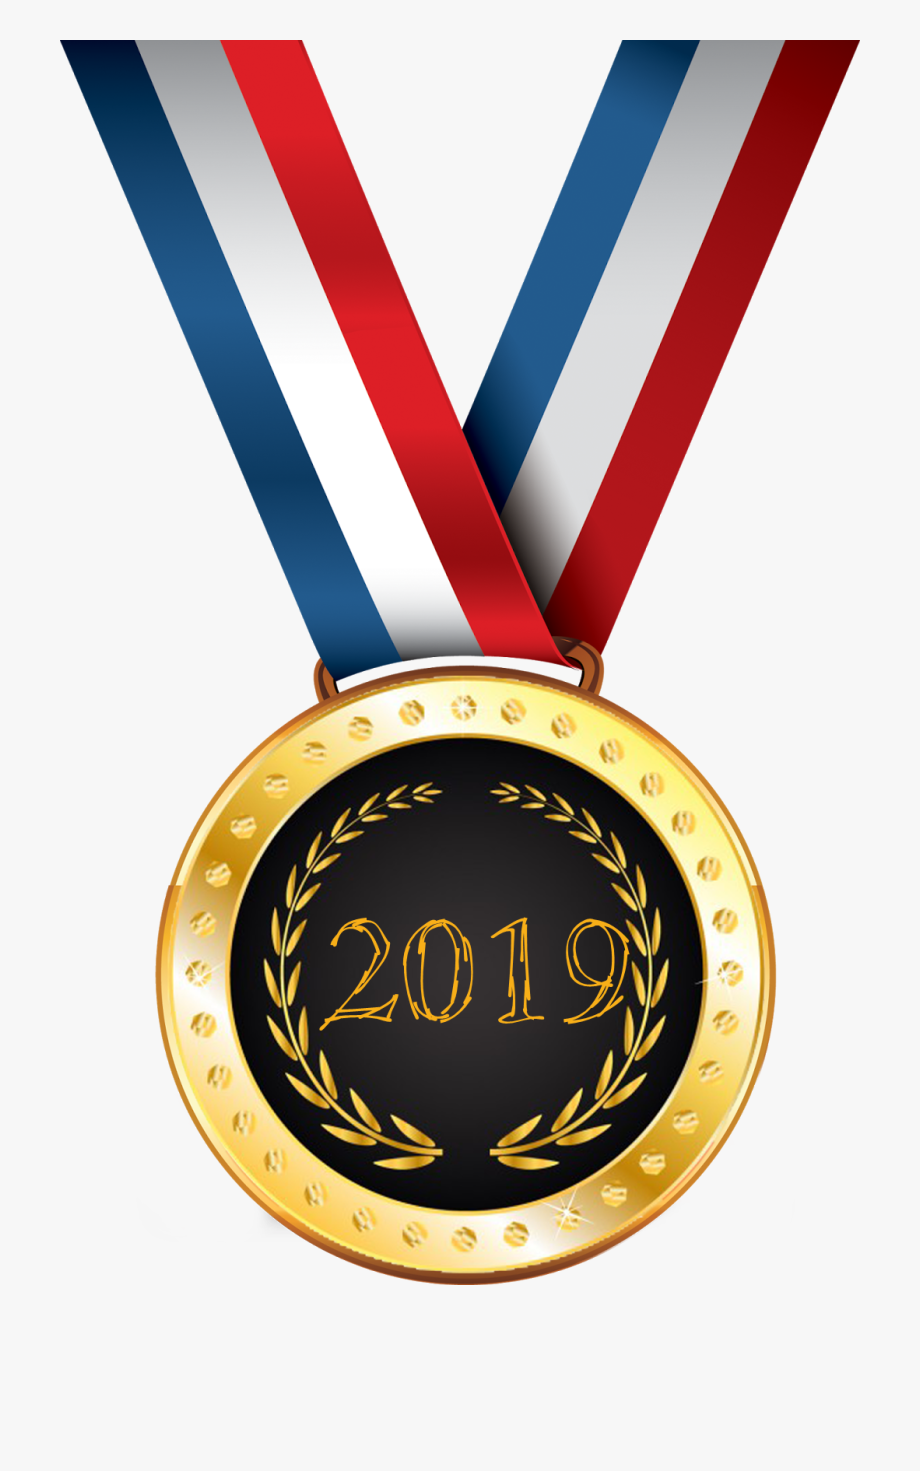 Gold Medal Png Free Images.